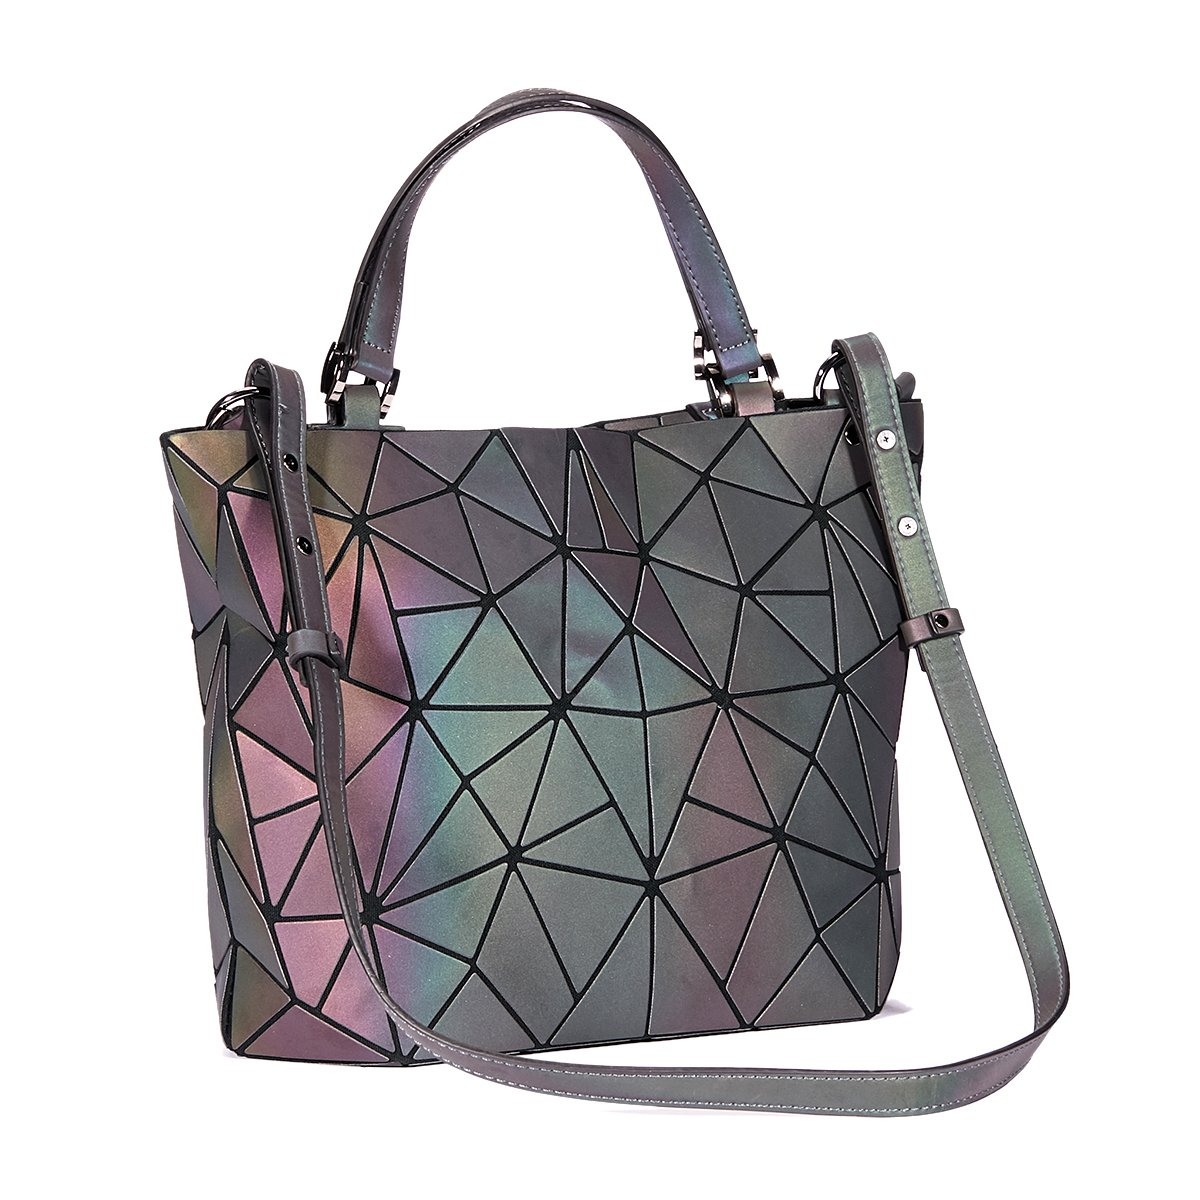 Geometric Luminesk Purses Handbags Large Tote Gift for Women Holographic Top-Handle with Zipper Closure Messenger Satchel Bags (Large Handbags)